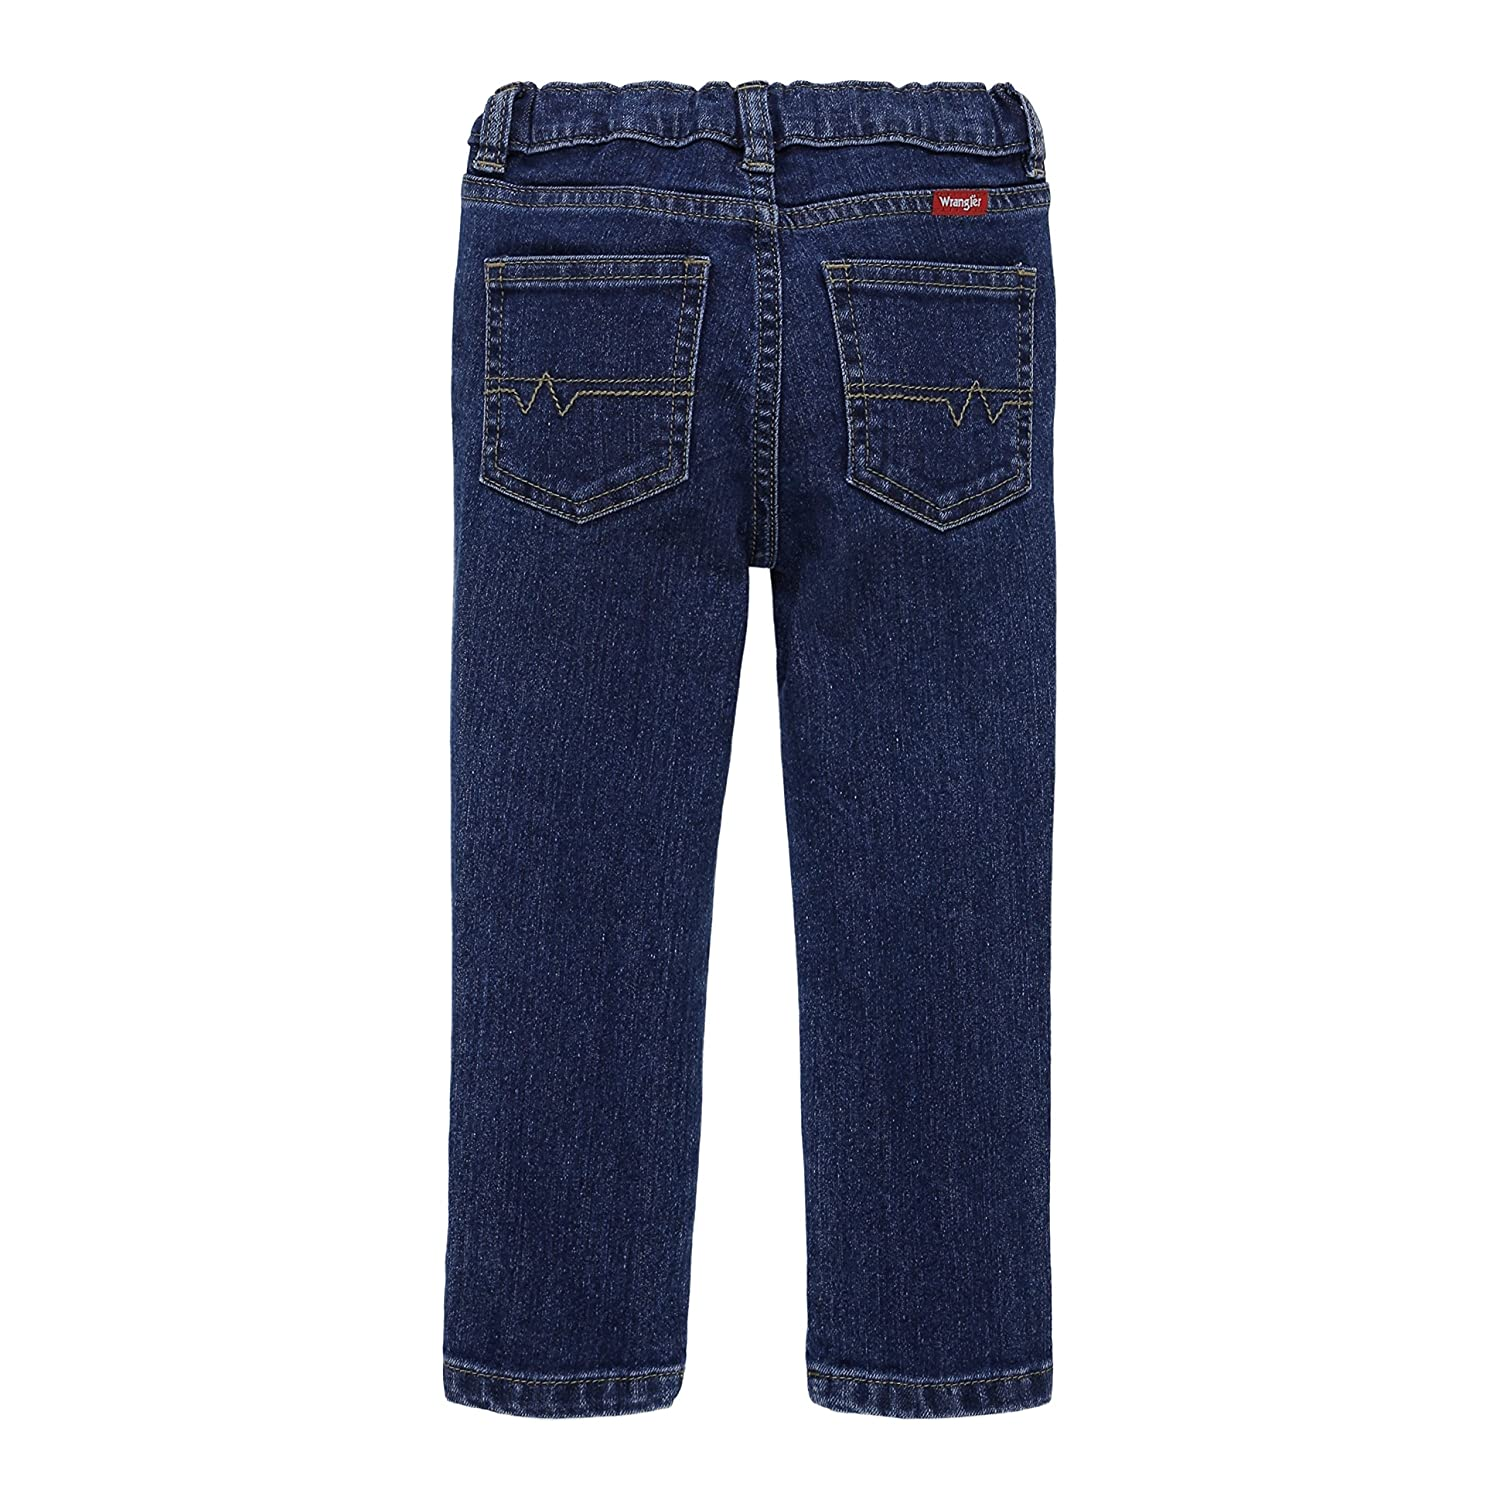 db6c27c4 Amazon.com: Wrangler Authentics Toddler Boys' Skinny Jean: Clothing